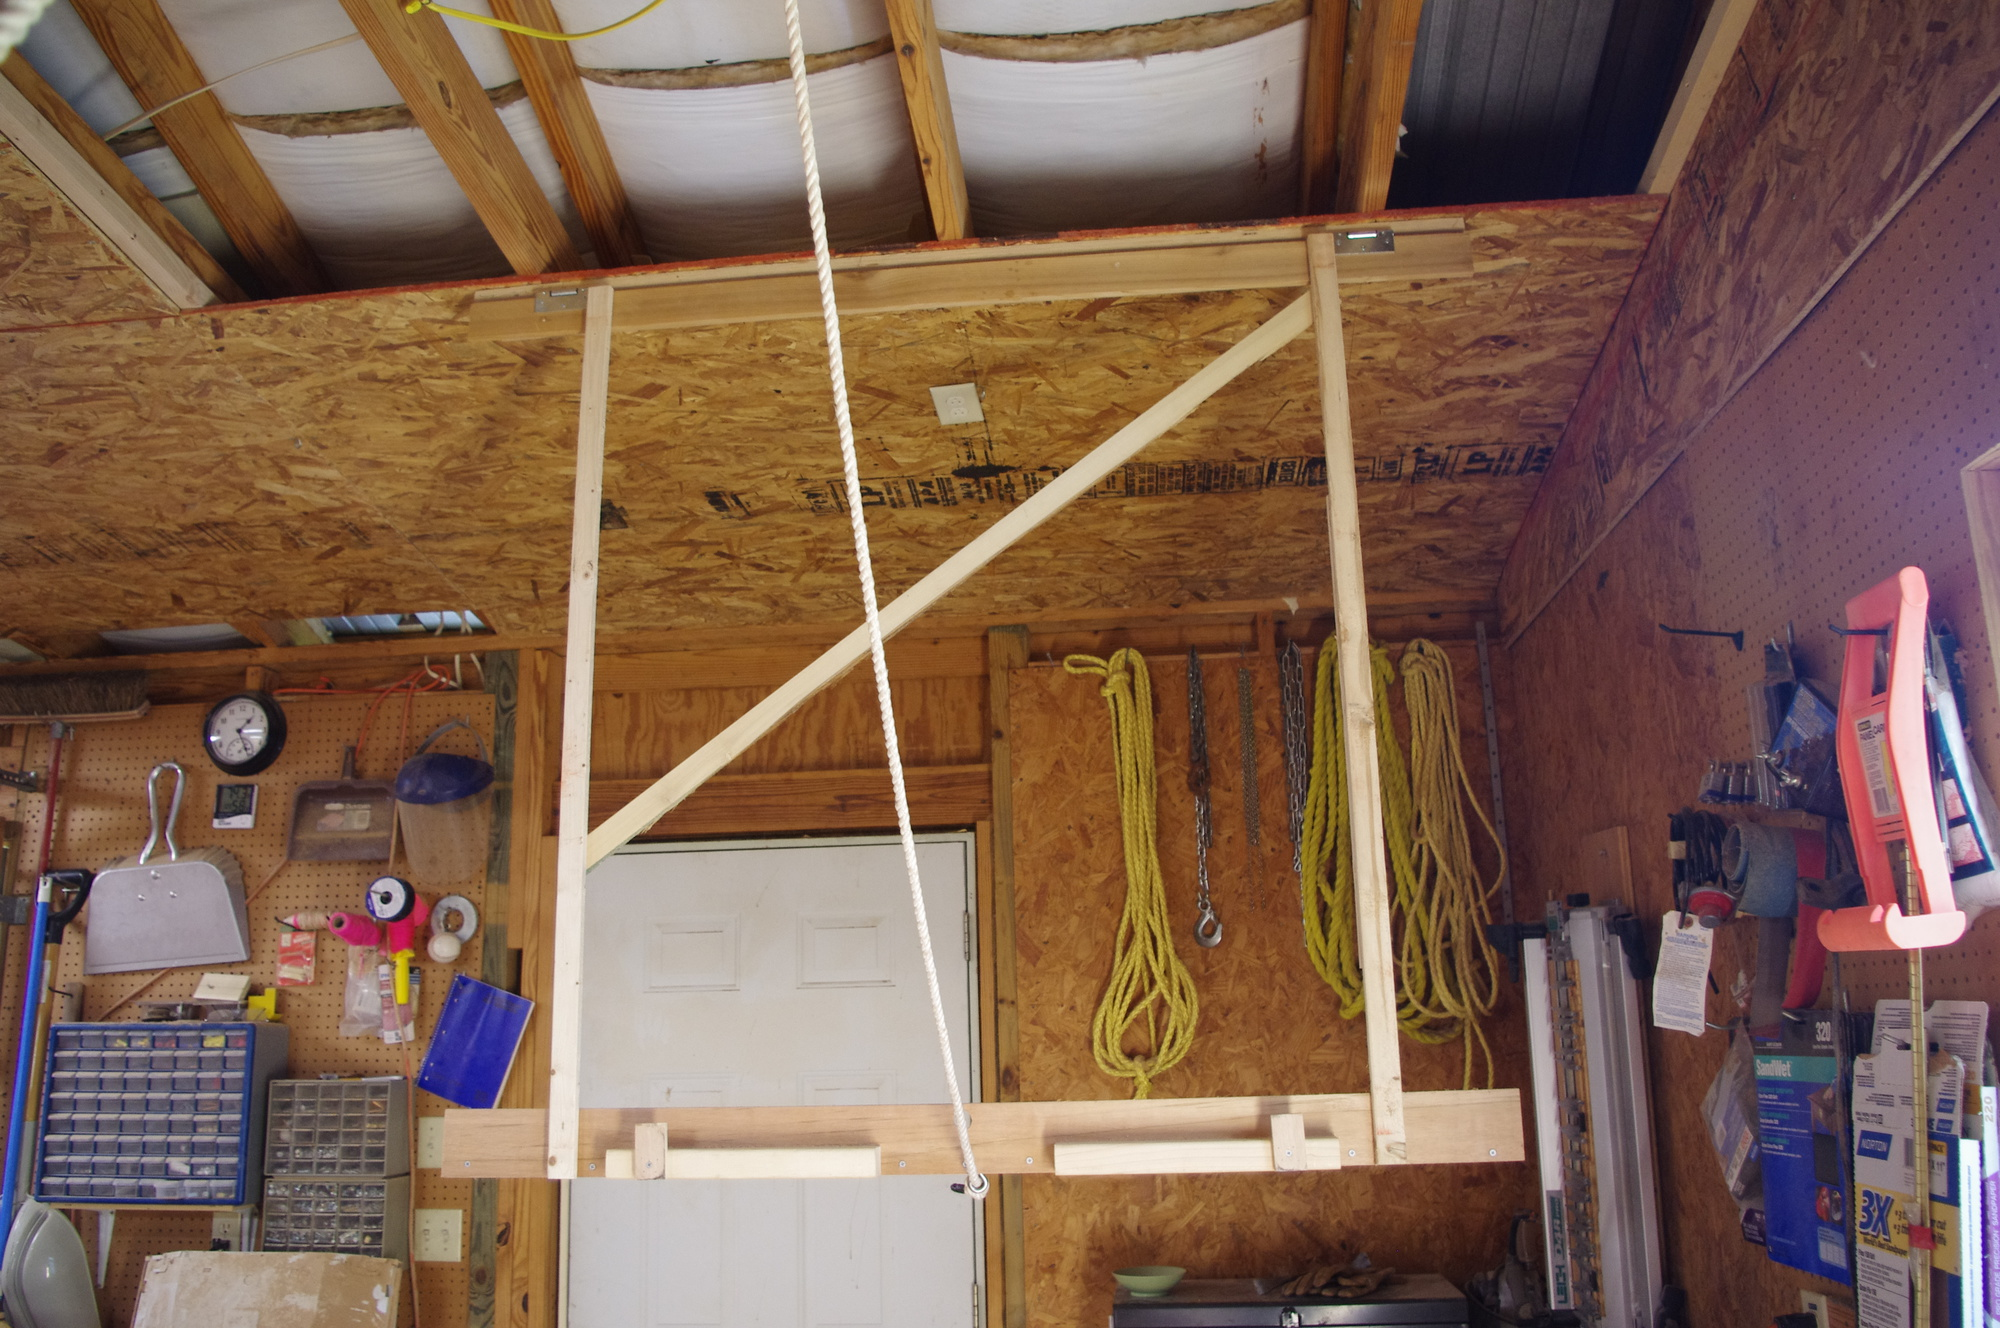 Jig to Install 4X8 Sheets to Ceiling - Router Forums